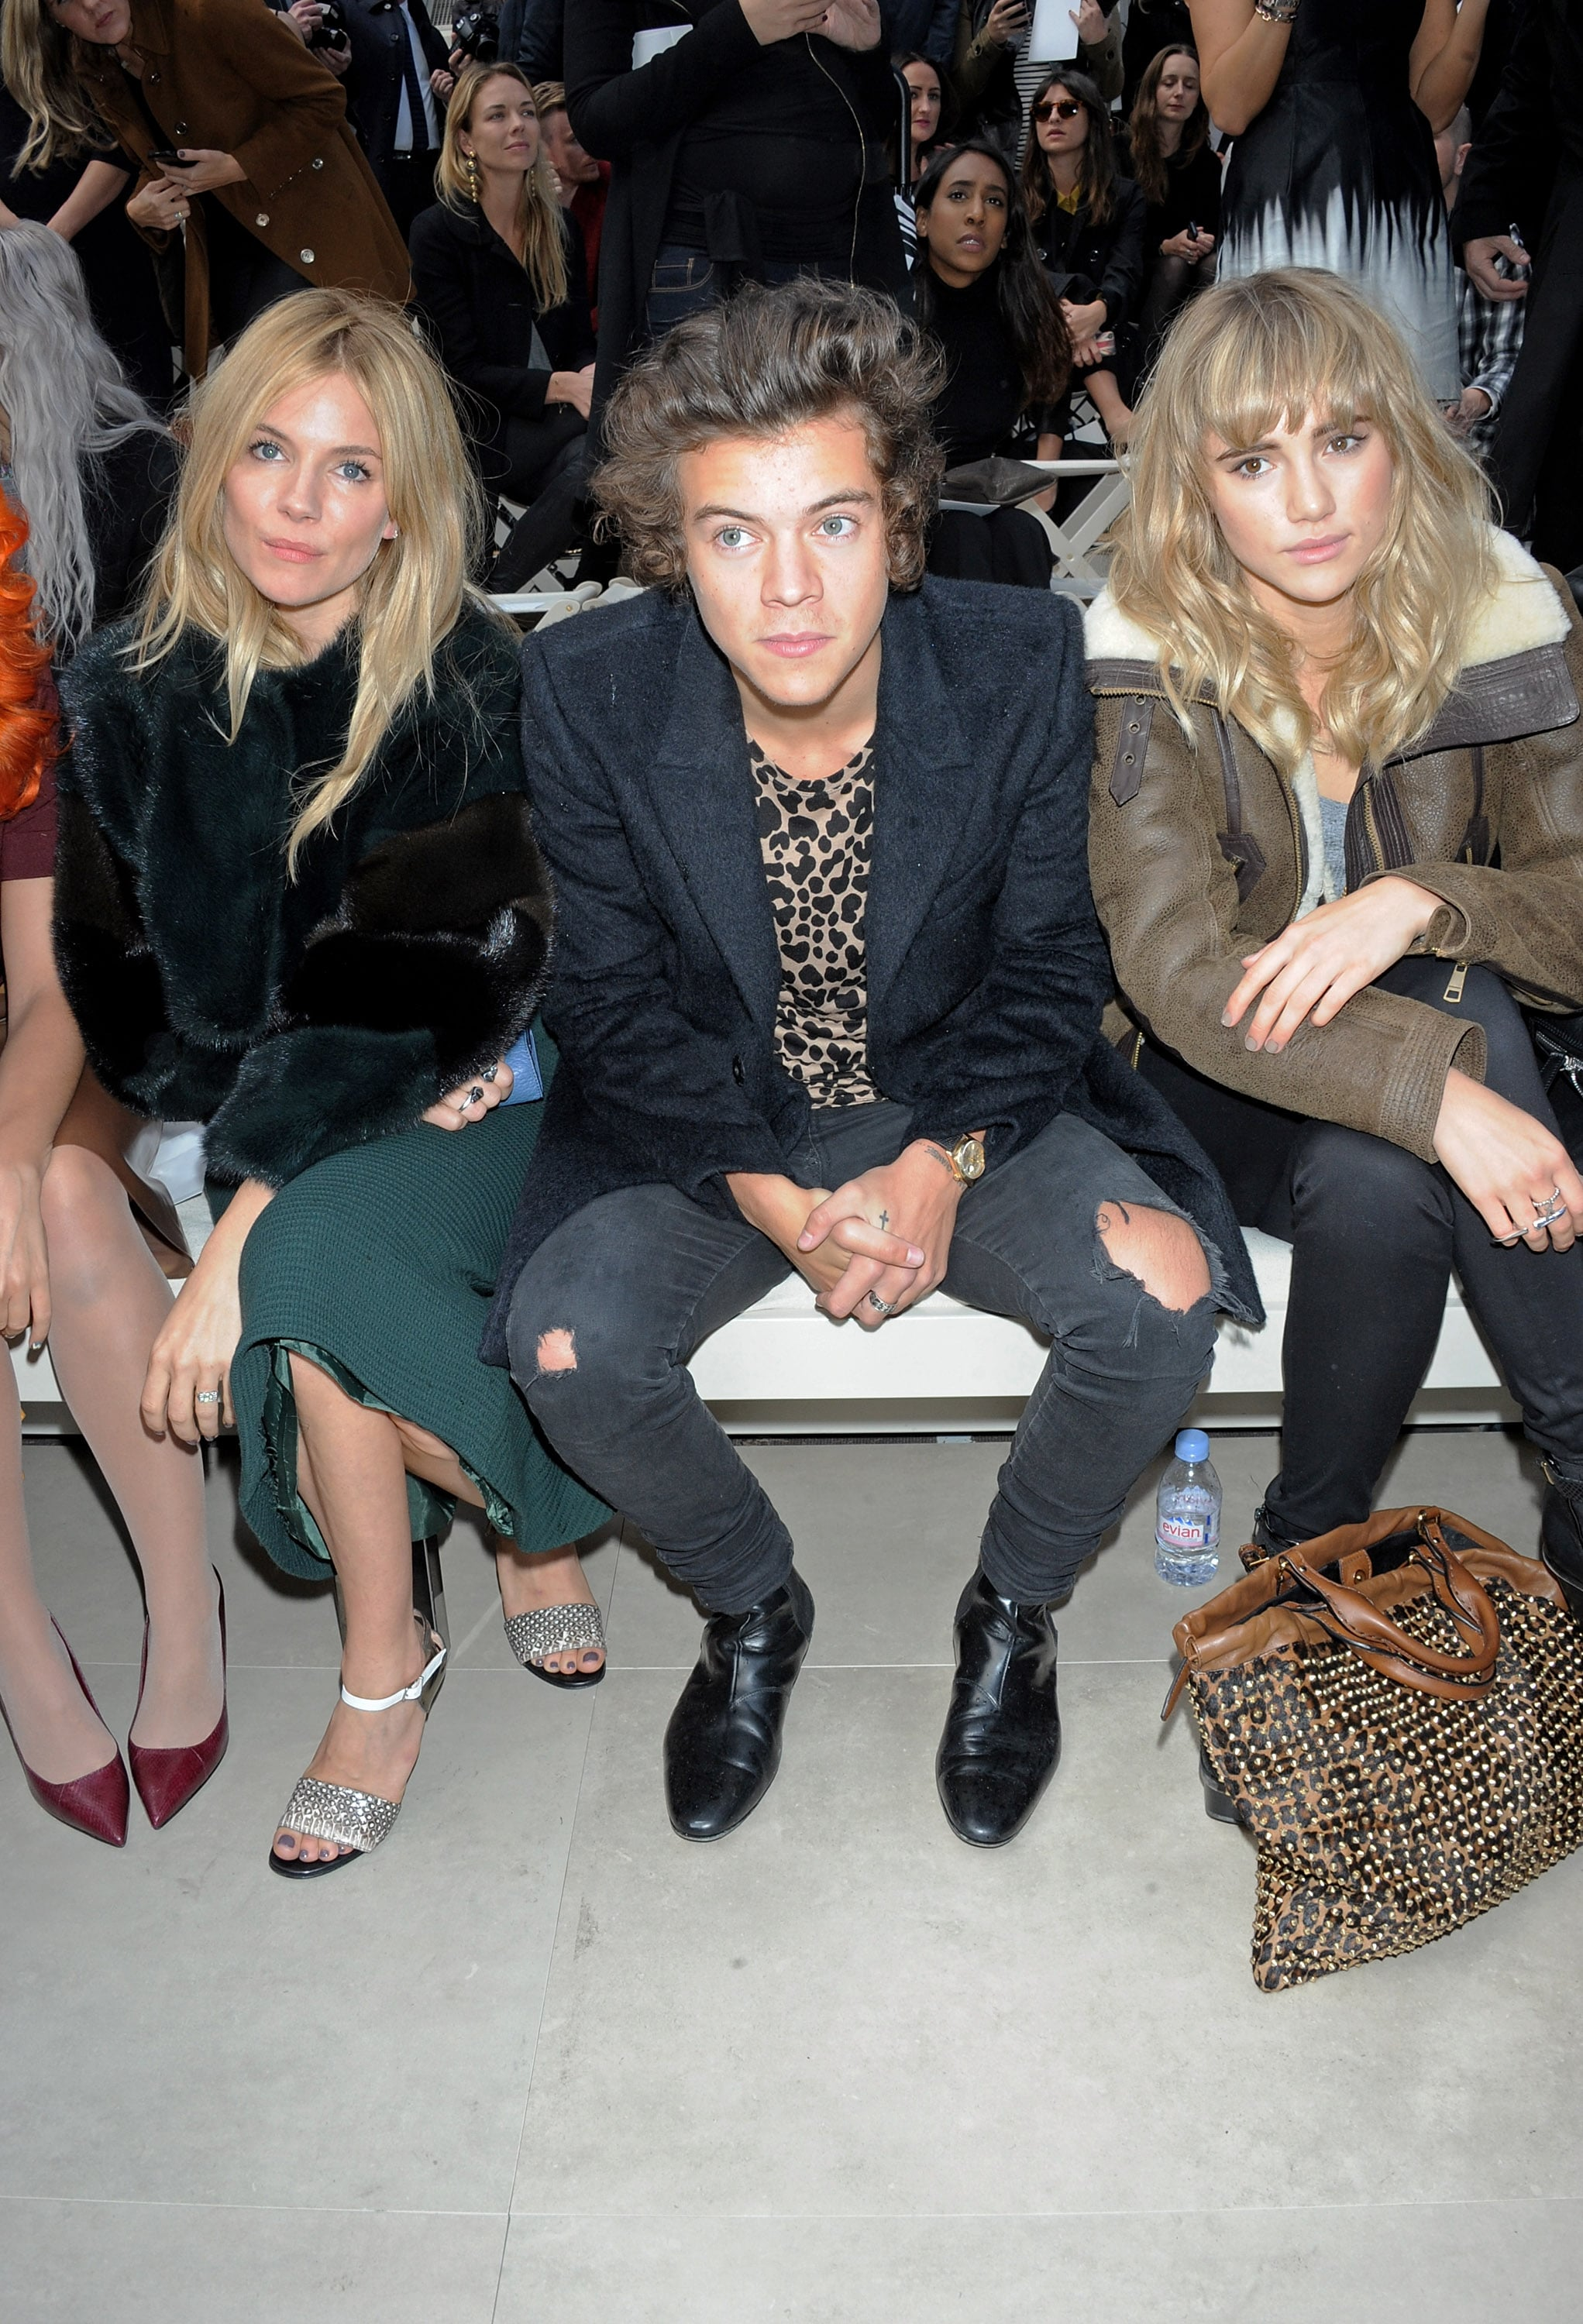 Harry Styles sat with Sienna Miller and Suki Waterhouse at the Burberry Prorsum show during London Fashion Week.